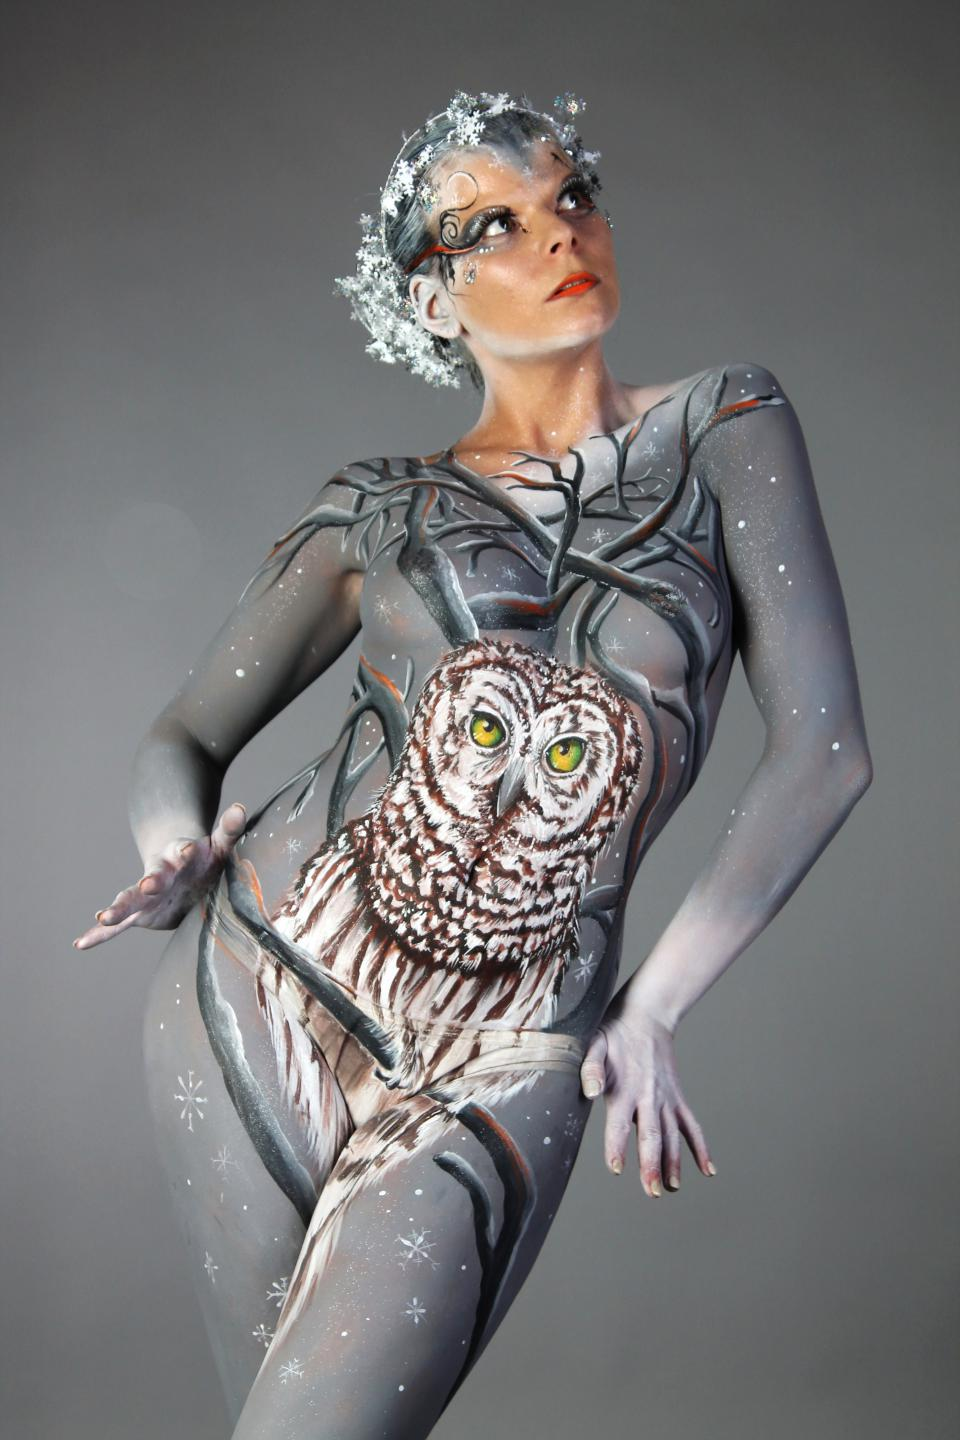 Best Paint For Body Painting